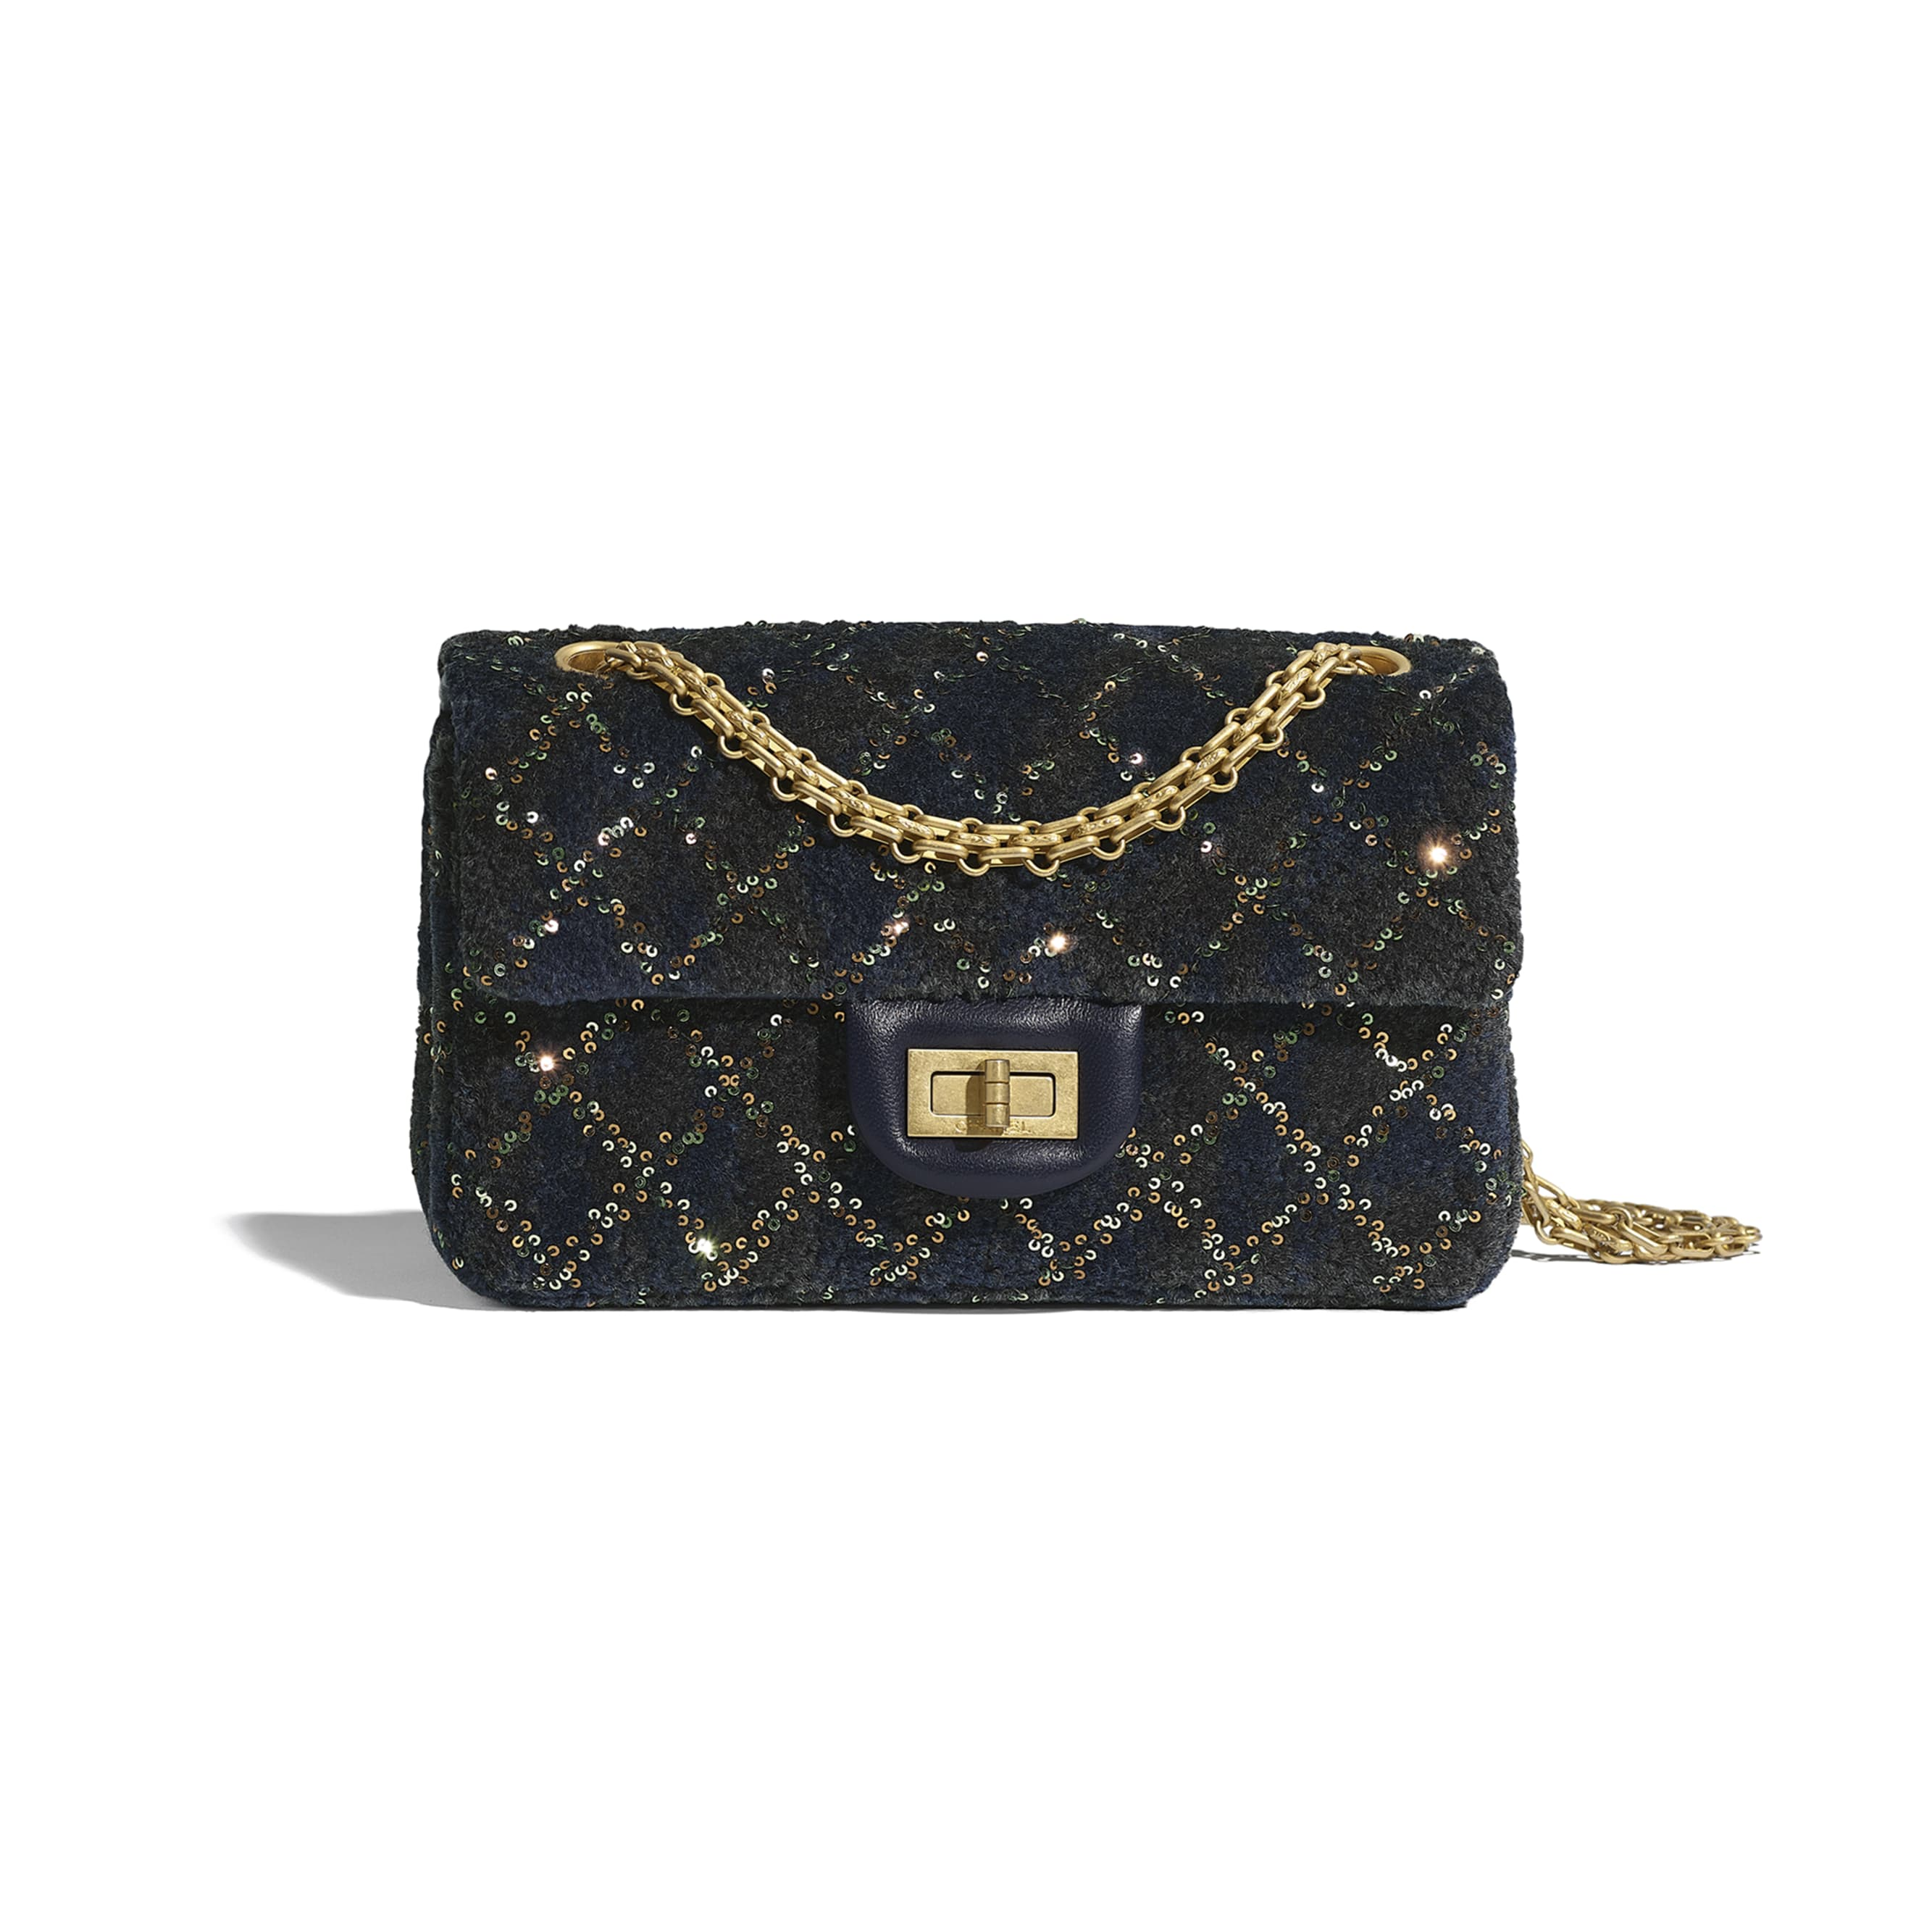 Small 2.55 Handbag - Navy Blue - Wool, Mixed Fibers, Sequins & Gold-Tone Metal - CHANEL - Default view - see standard sized version